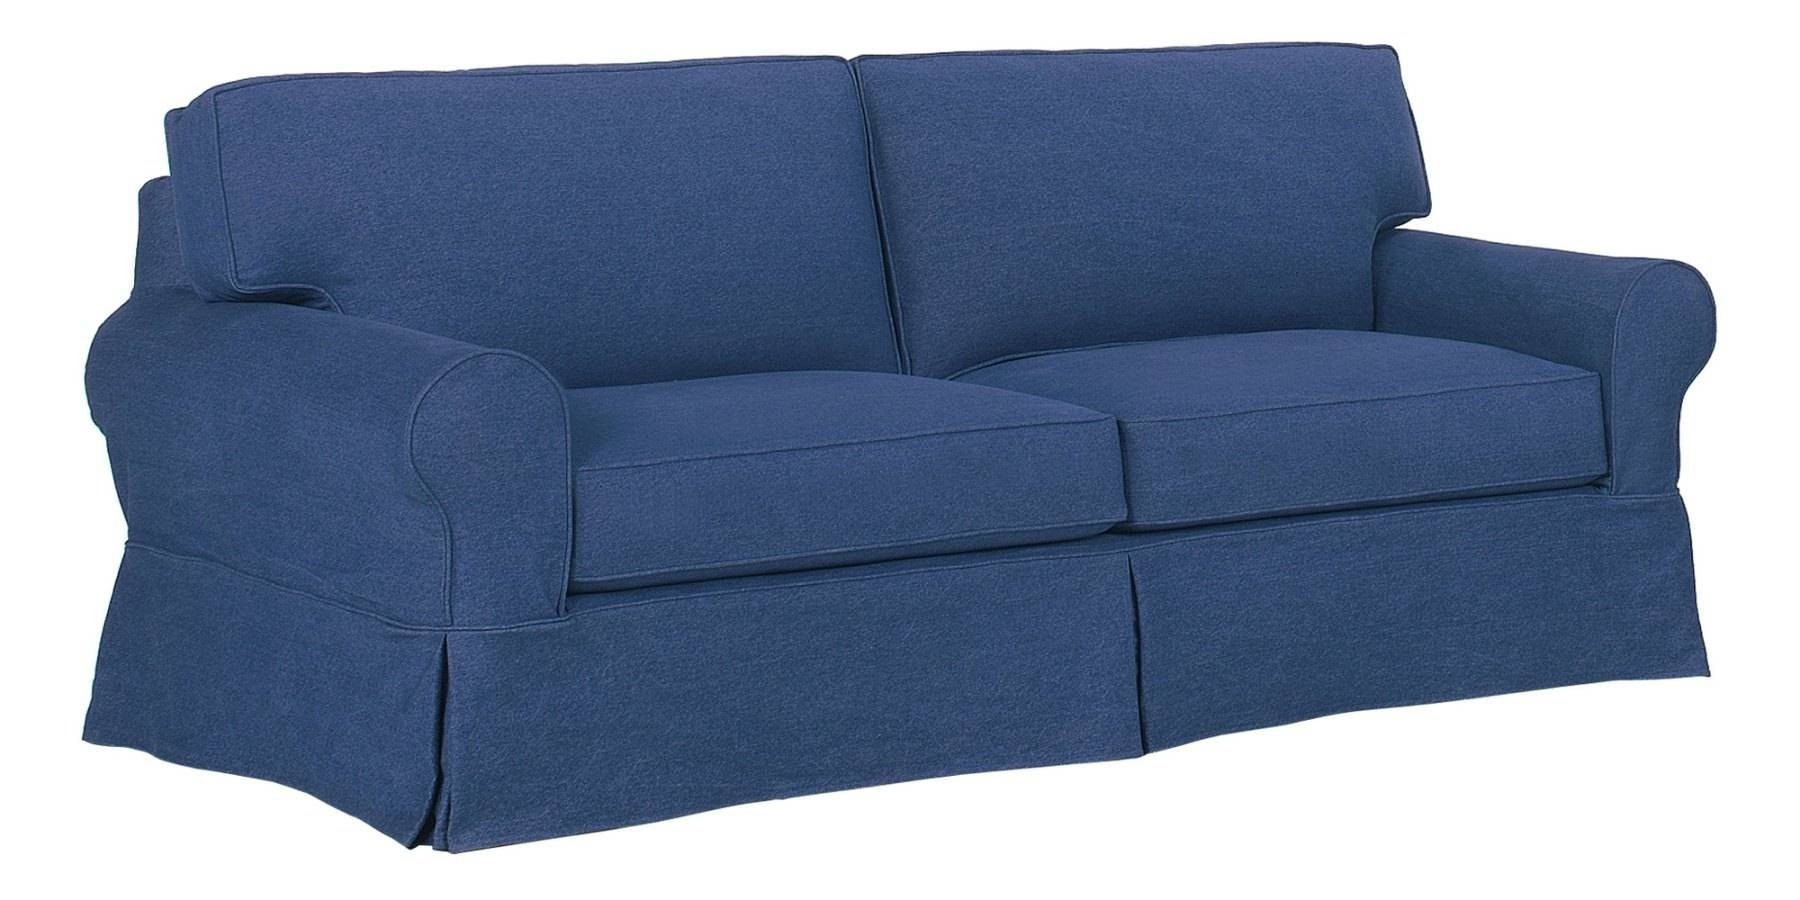 denim sofa slipcovers cream colored leather sofa and denim  best living room furniture with dogs